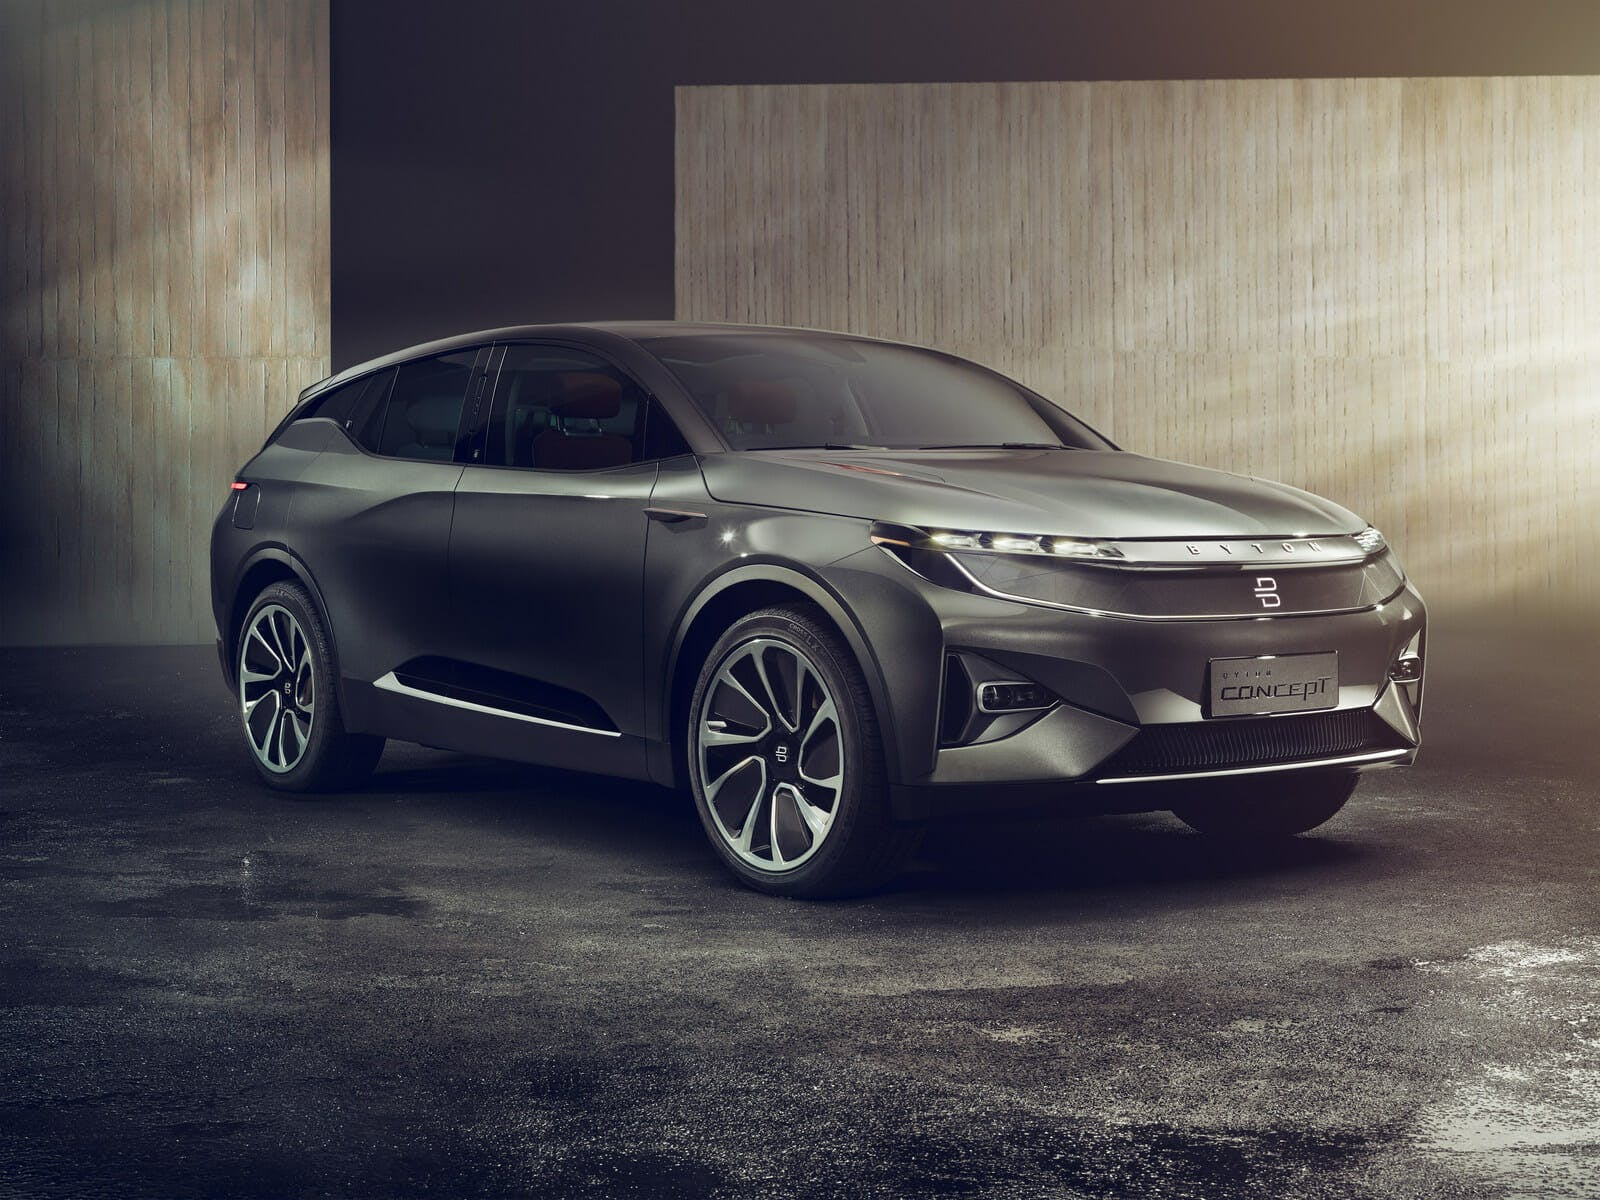 byton concept suv electric self-driving car